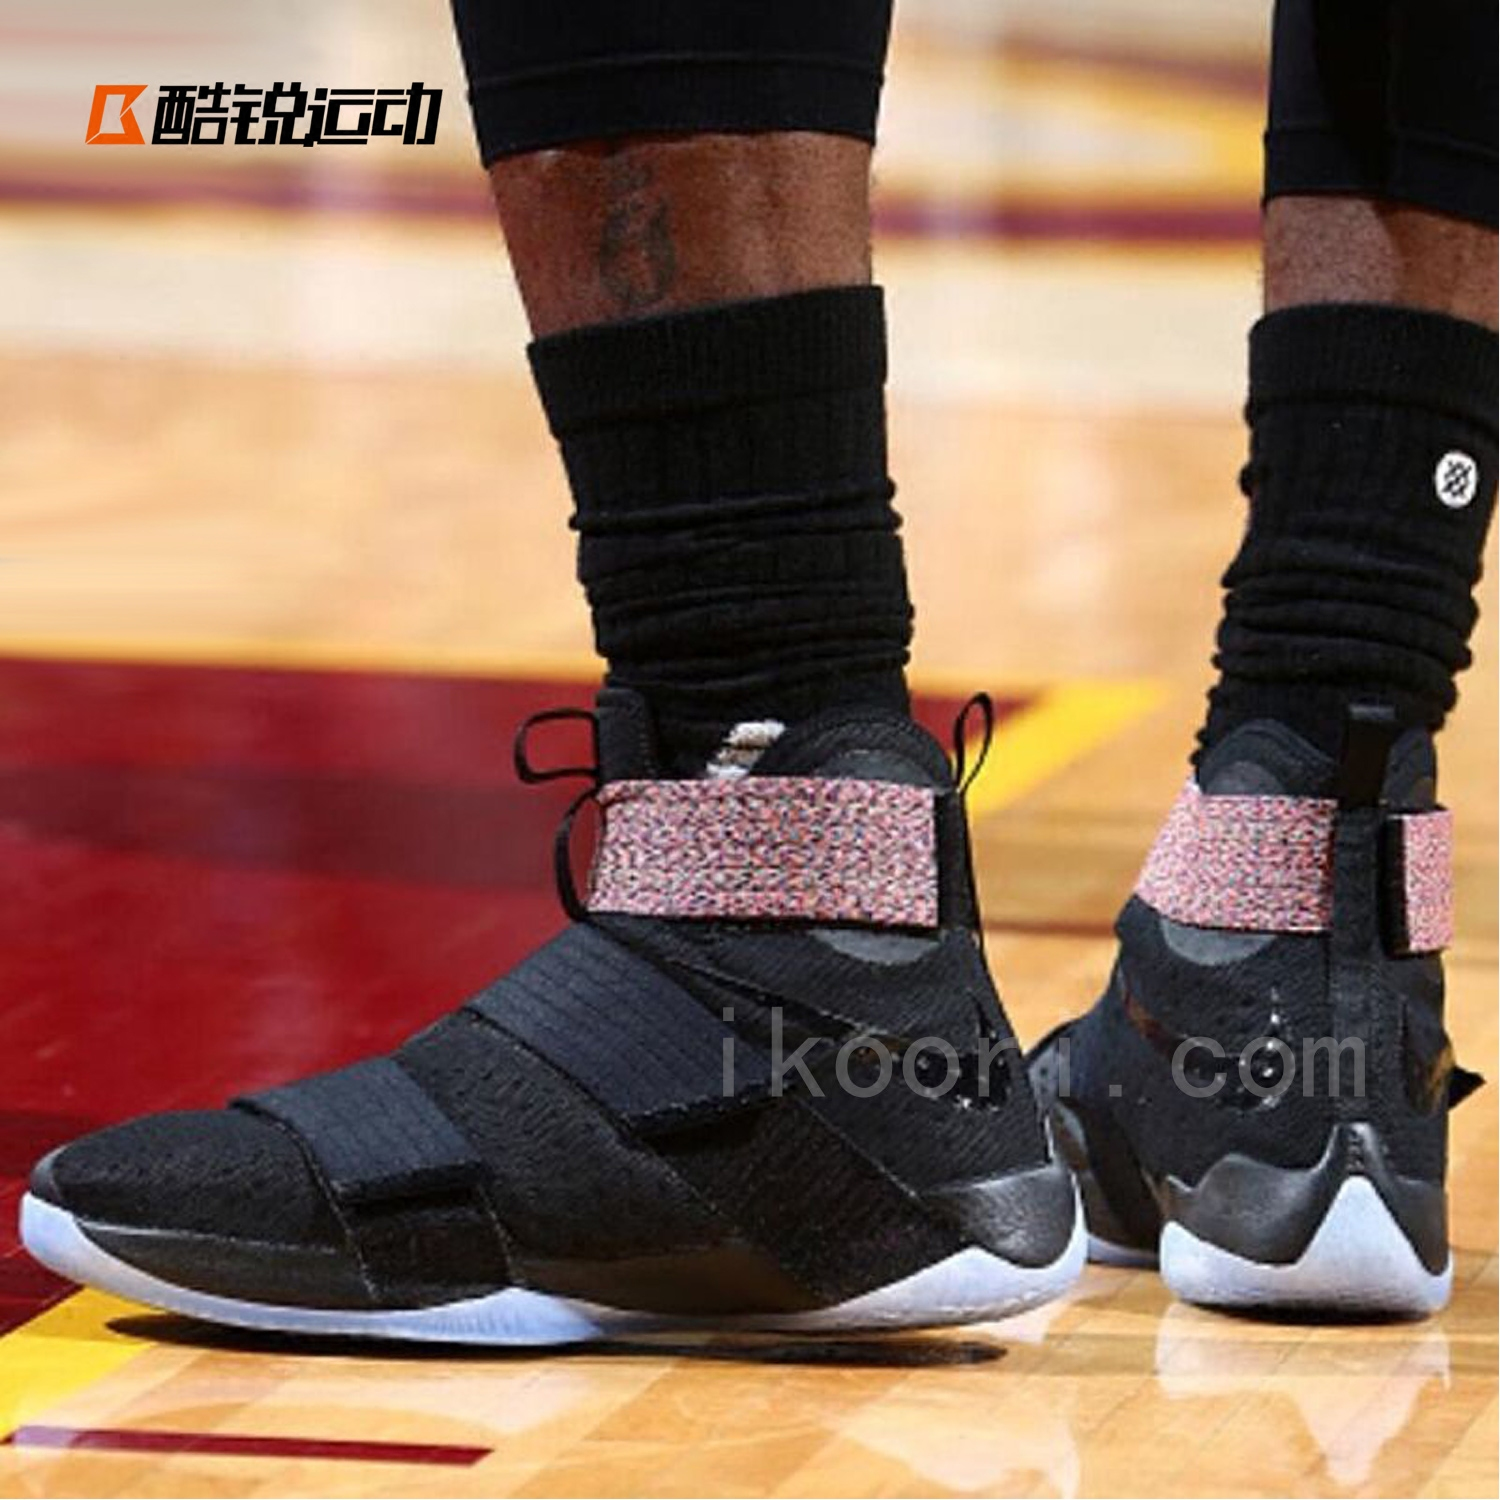 708aff8c0d79 Get Quotations · Nike lebron soldier soldier james 10 basketball shoes on  behalf of 10 in the autumn of